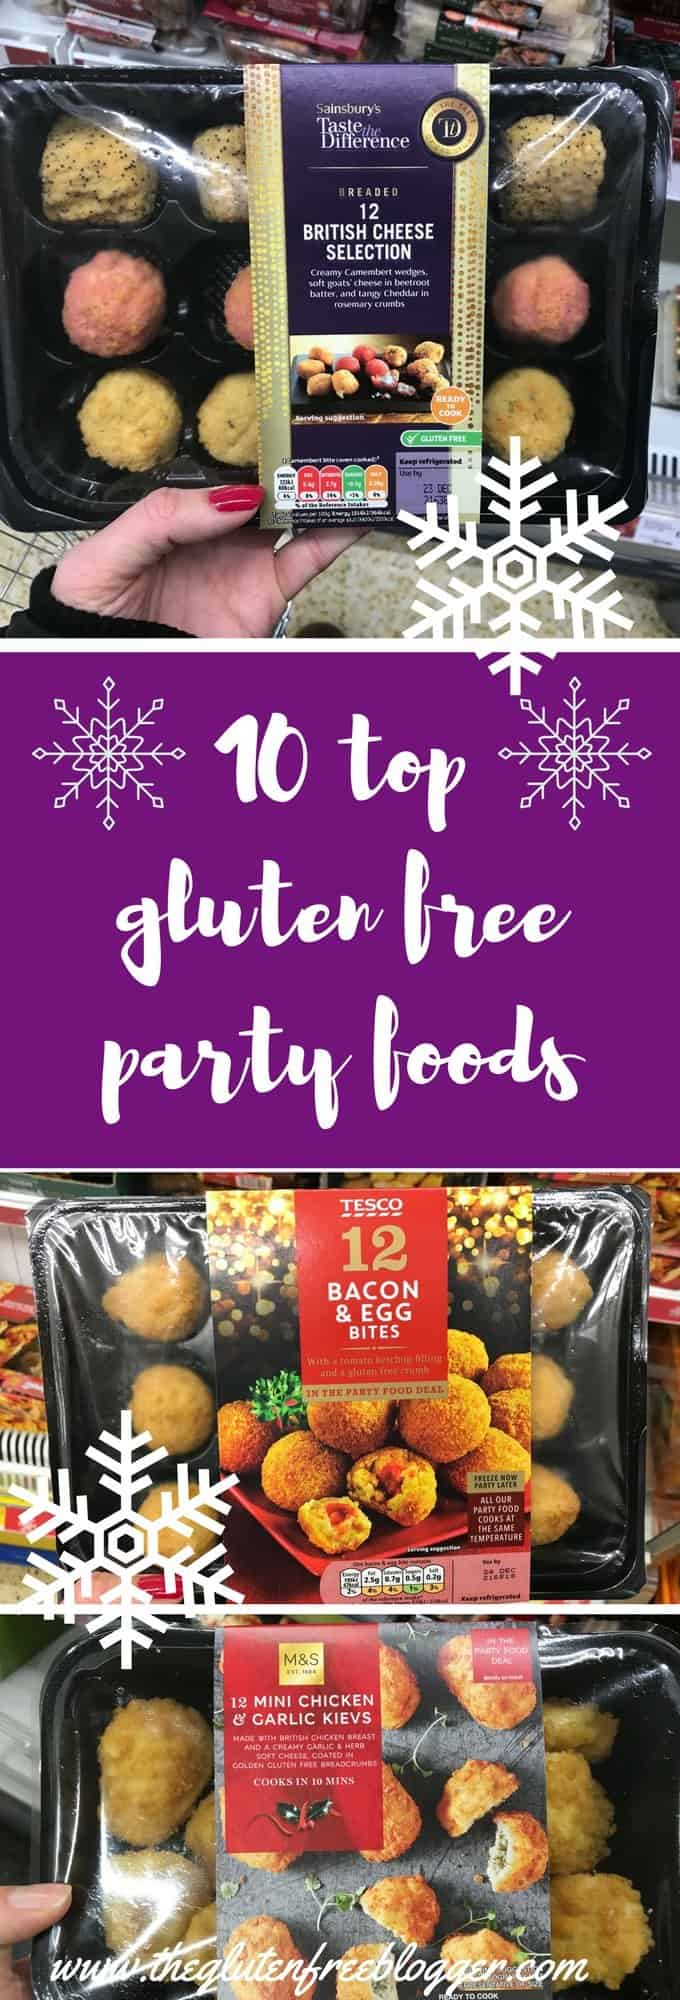 10 gluten free party food picks - www.theglutenfreeblogger.com